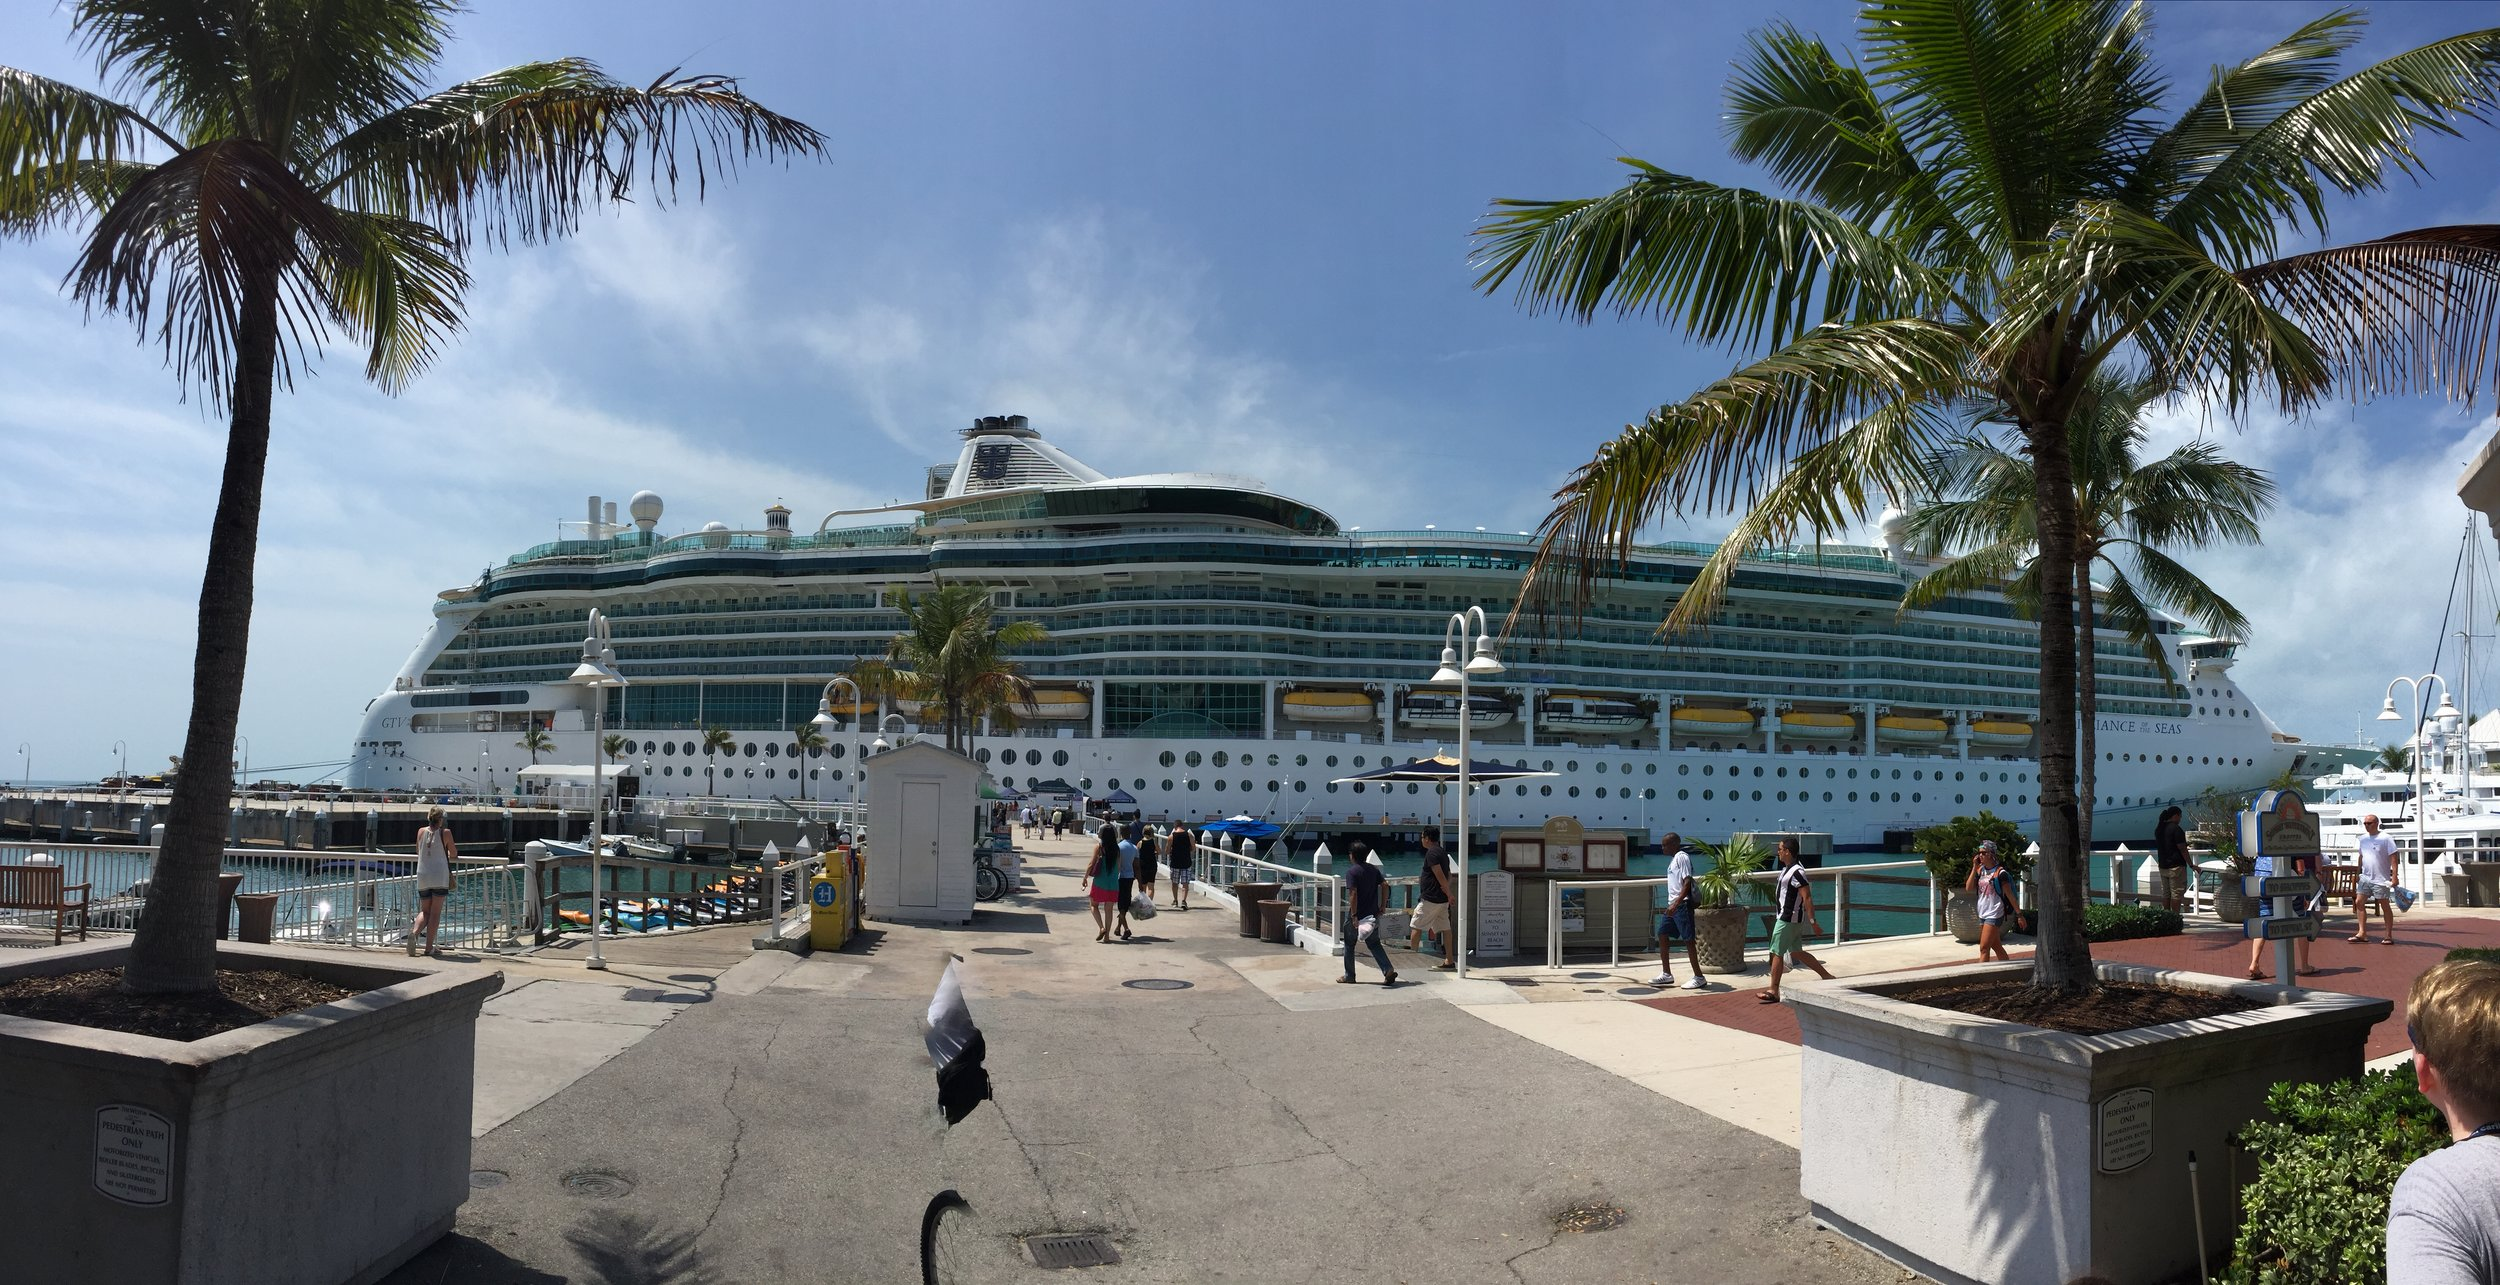 The port side of the ship.